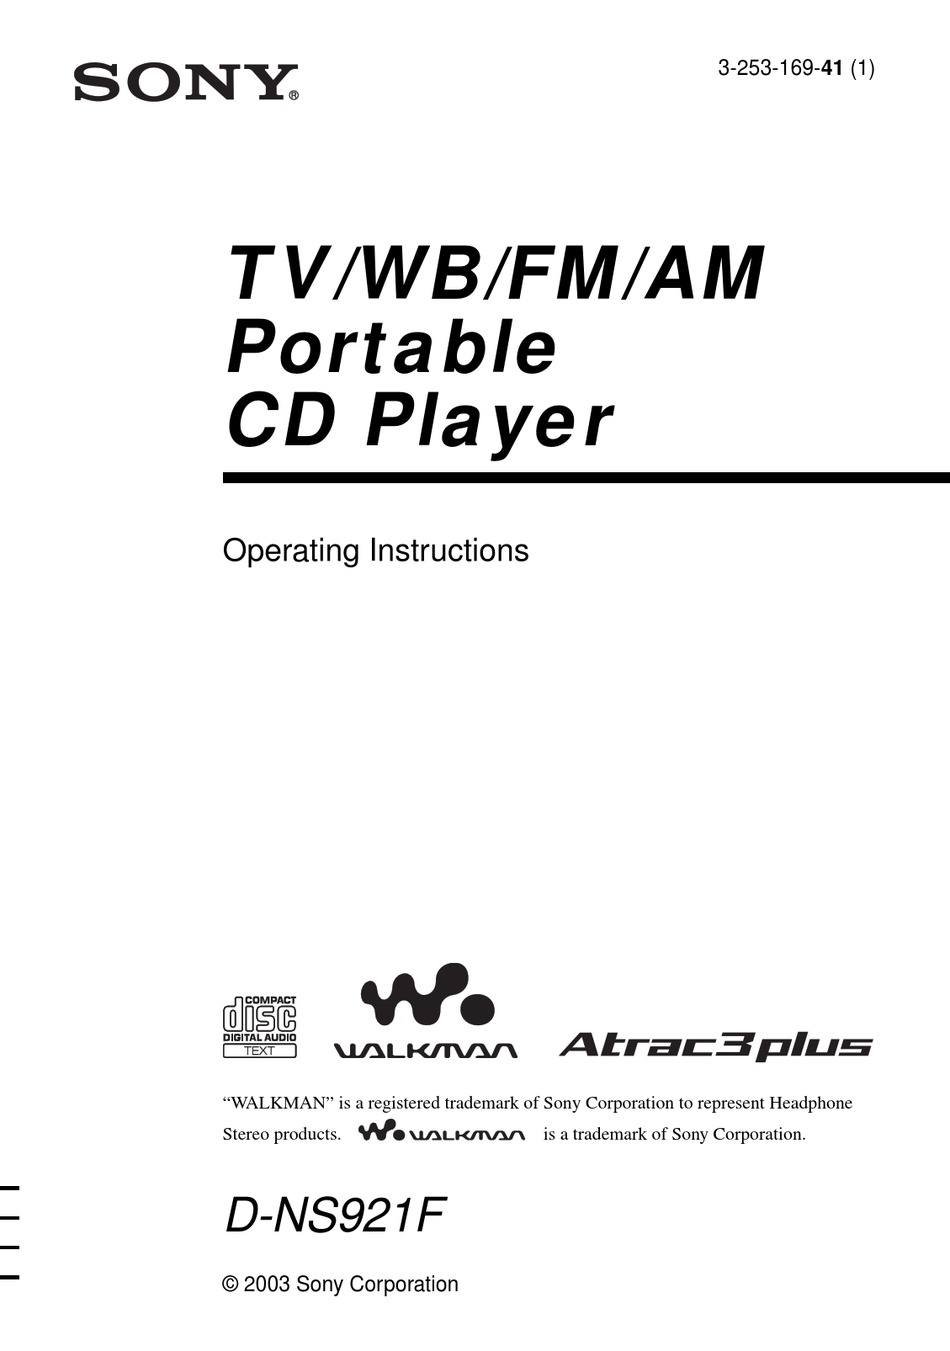 SONY WALKMAN D-NS921F OPERATING INSTRUCTIONS MANUAL Pdf